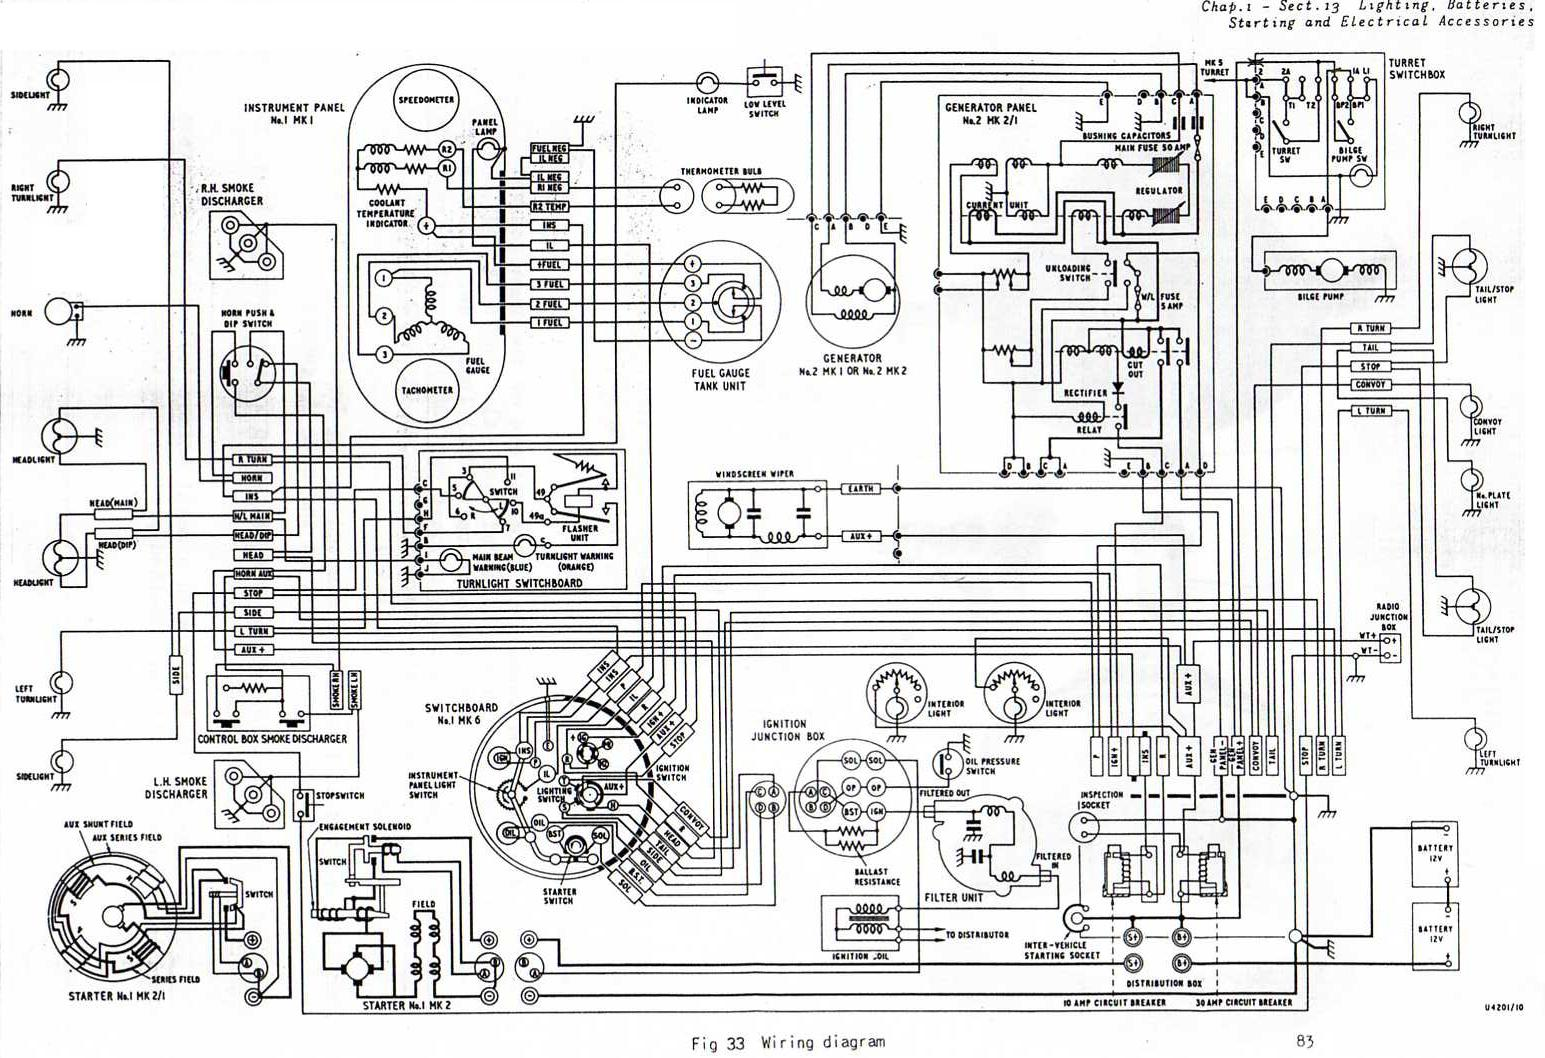 1969 mustang under dash wiring diagram bmw obd camaro schematic get free image about